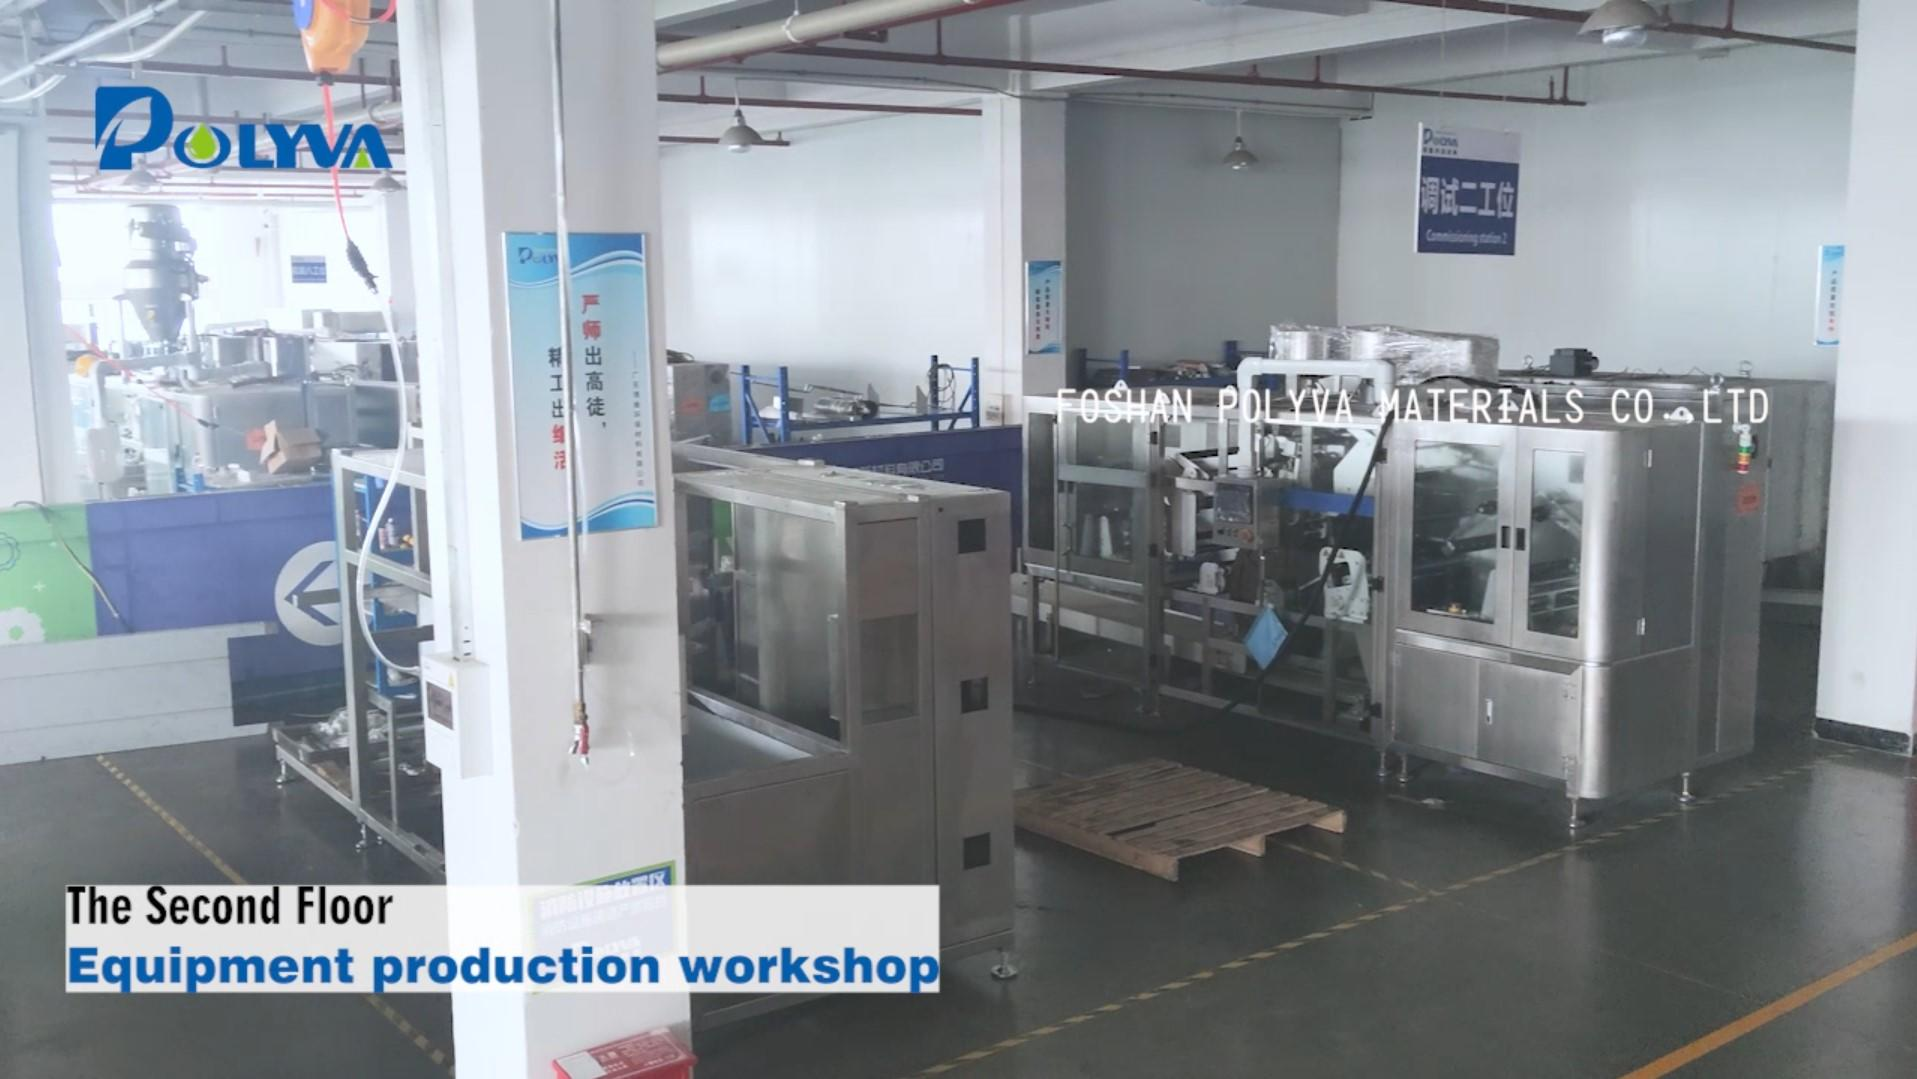 Visit the laundry pods and laundry packaging machines manufacturer of China |Polyva